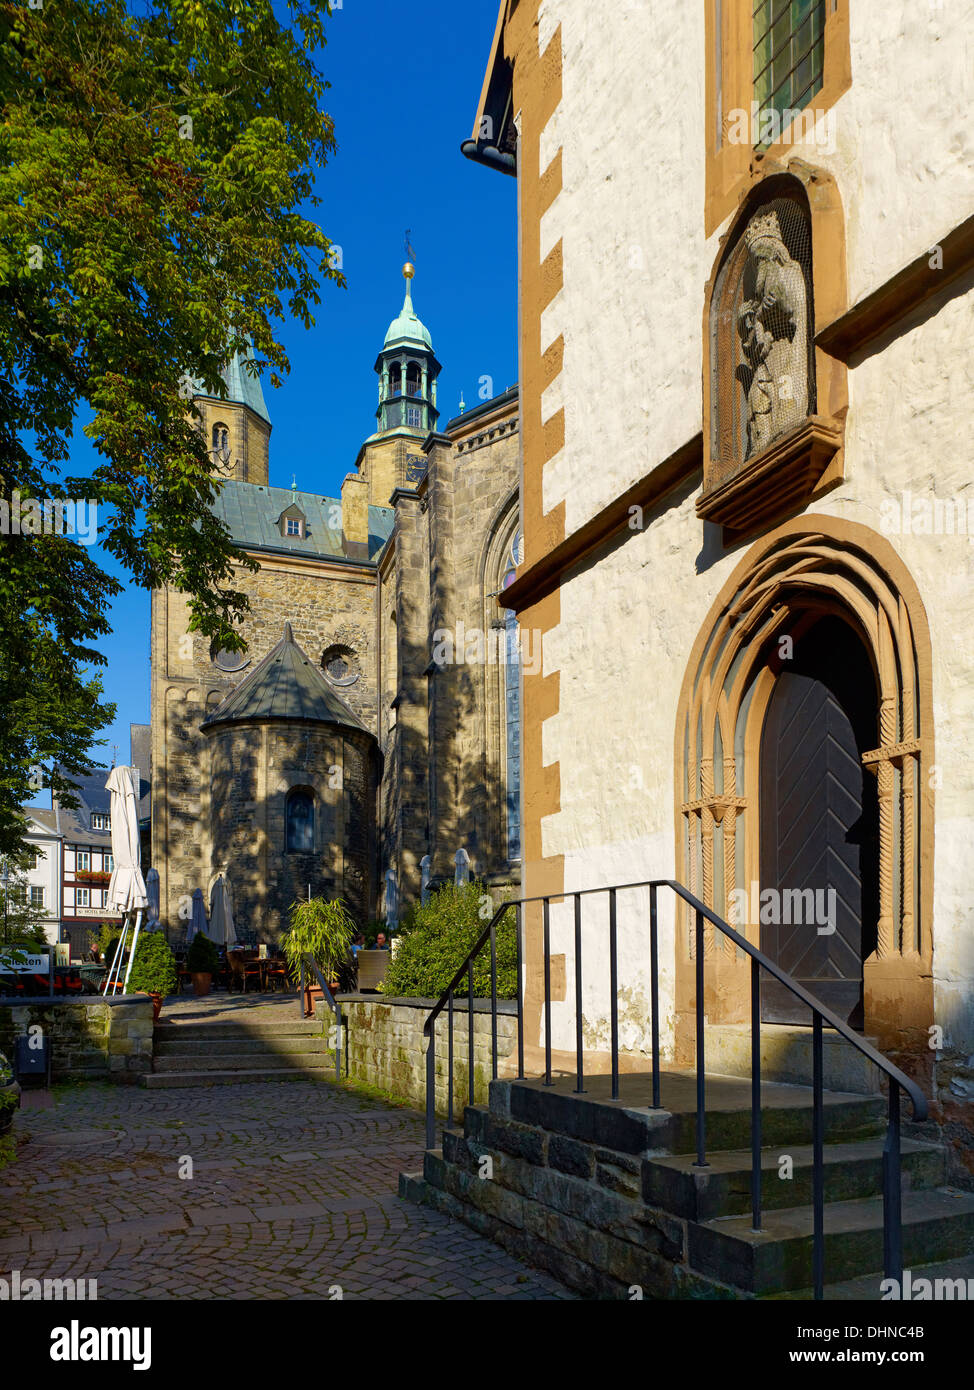 Town Hall and Church of St. Cosmas, Goslar, Germany - Stock Image